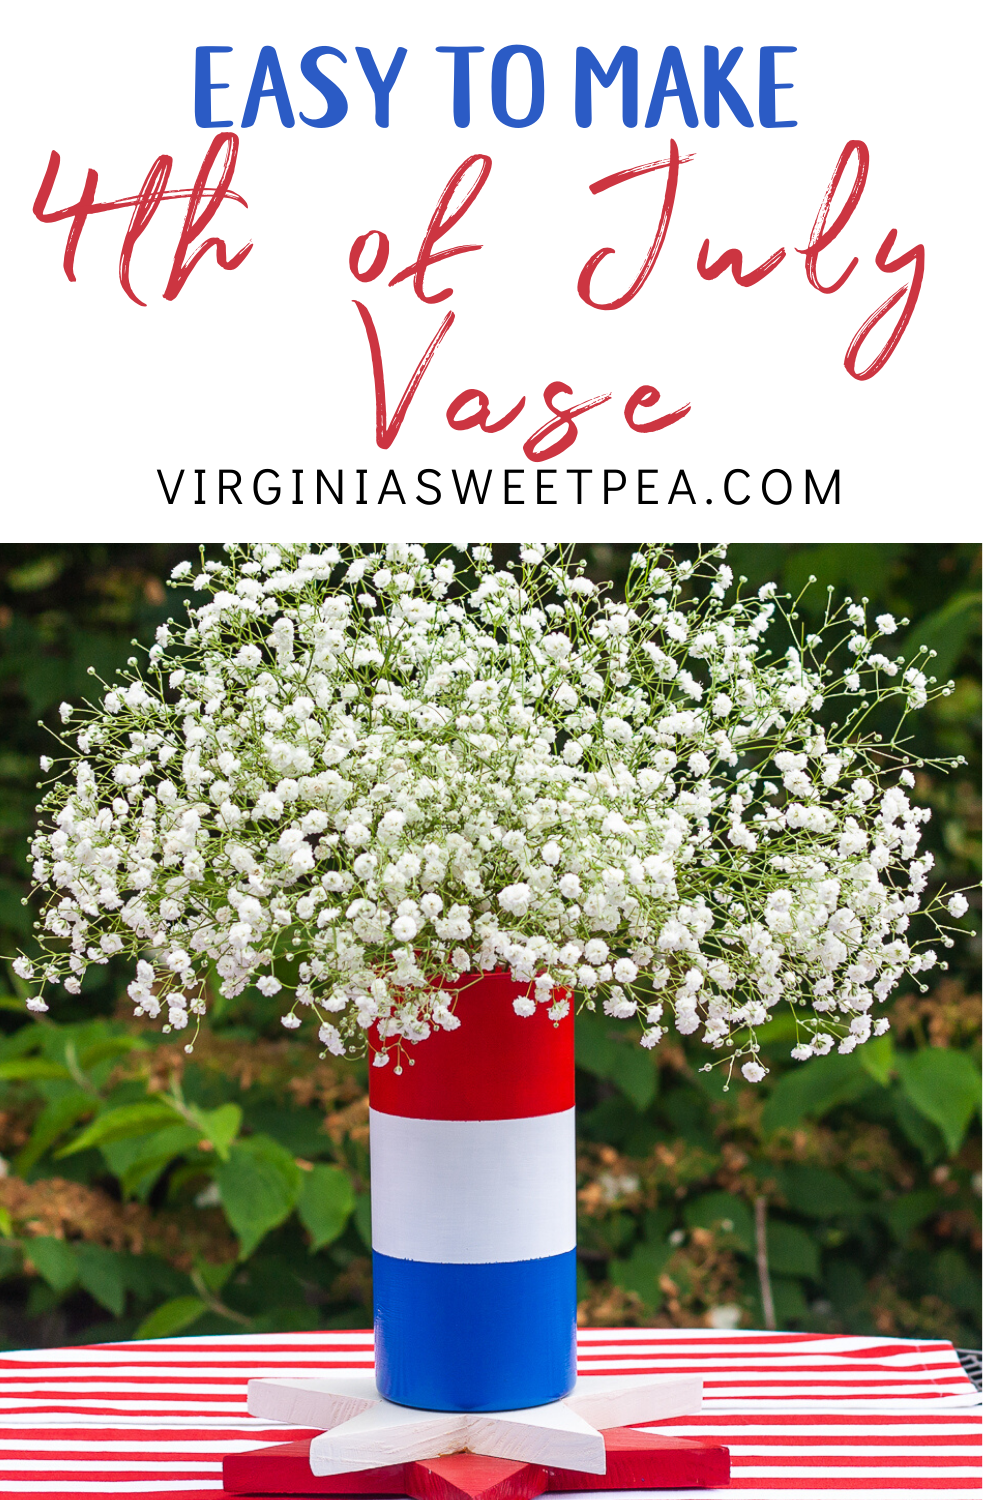 DIY Patriotic Vase - Learn how to use a clear florist vase from the thrift shop to make a red, white, and blue vase perfect to use for Memorial Day and 4th of July decor. #patriotic #patrioticcraft #4thofJuly #4thofjulycraft #redwhiteandbluecraft #summercraft #upcycleidea via @spaula